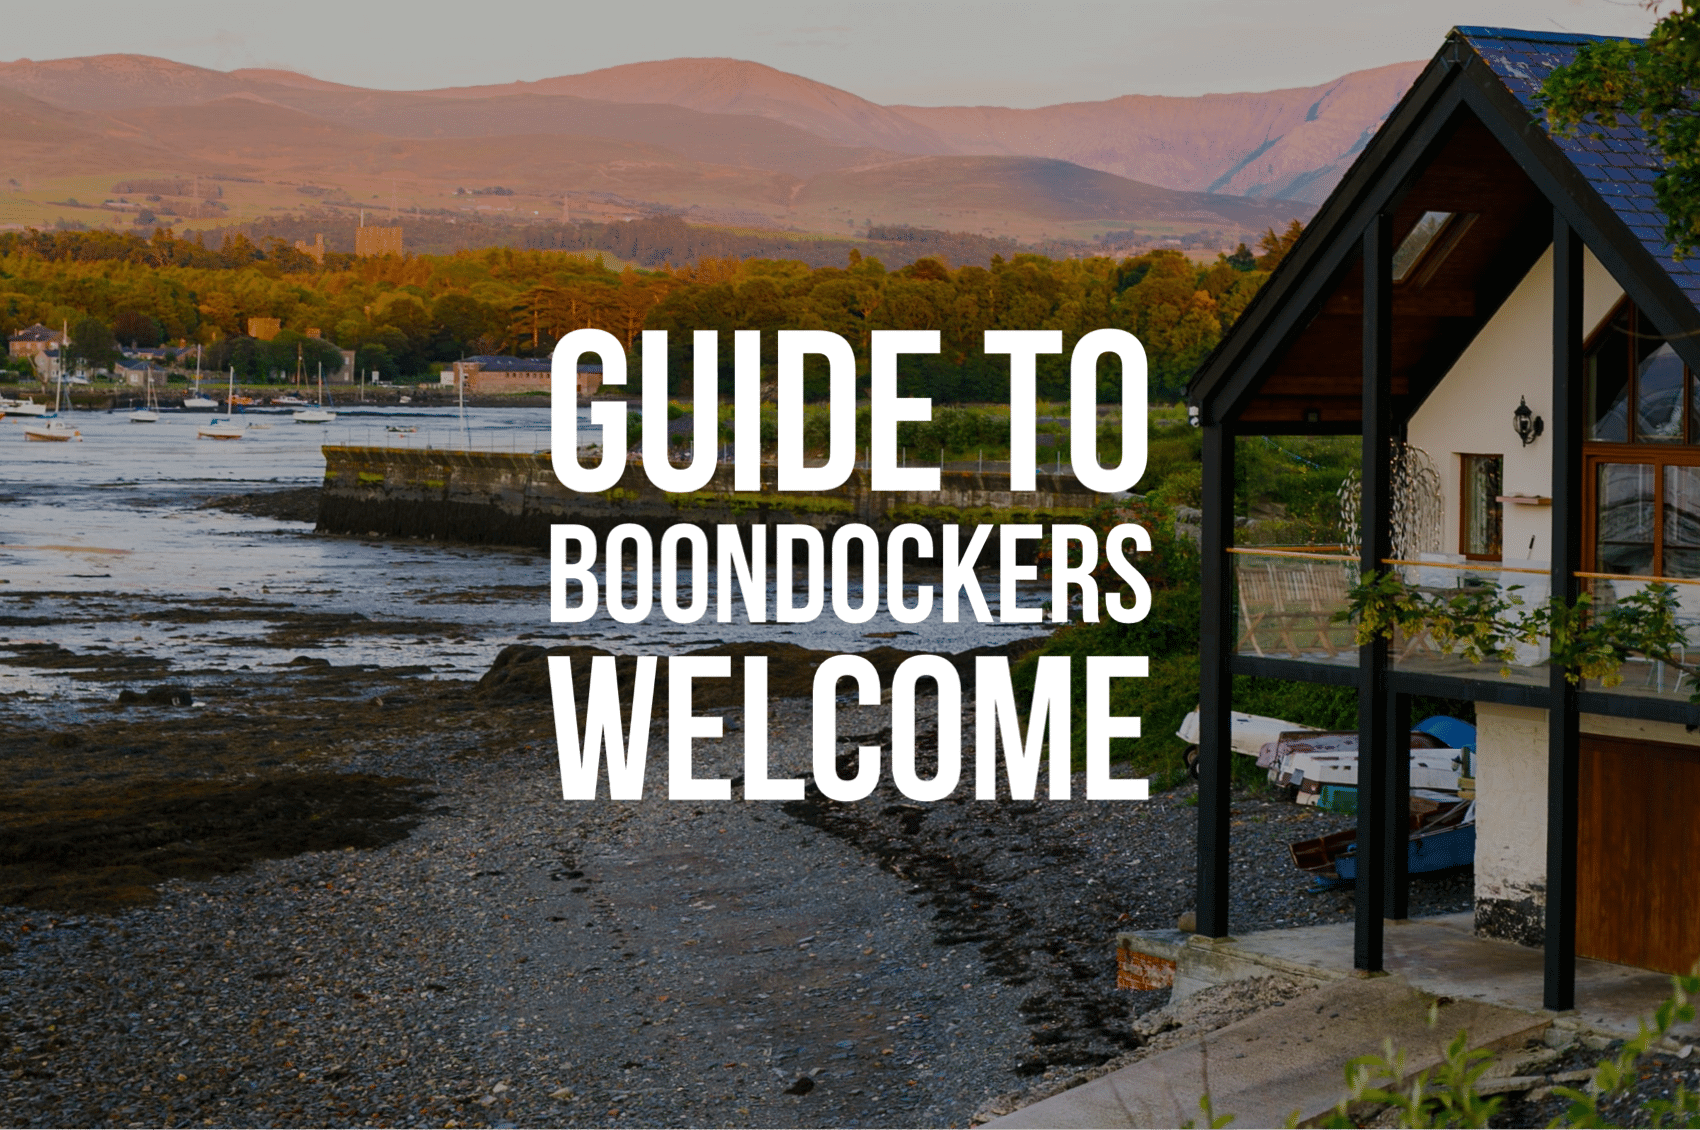 Guide to boondockers welcome